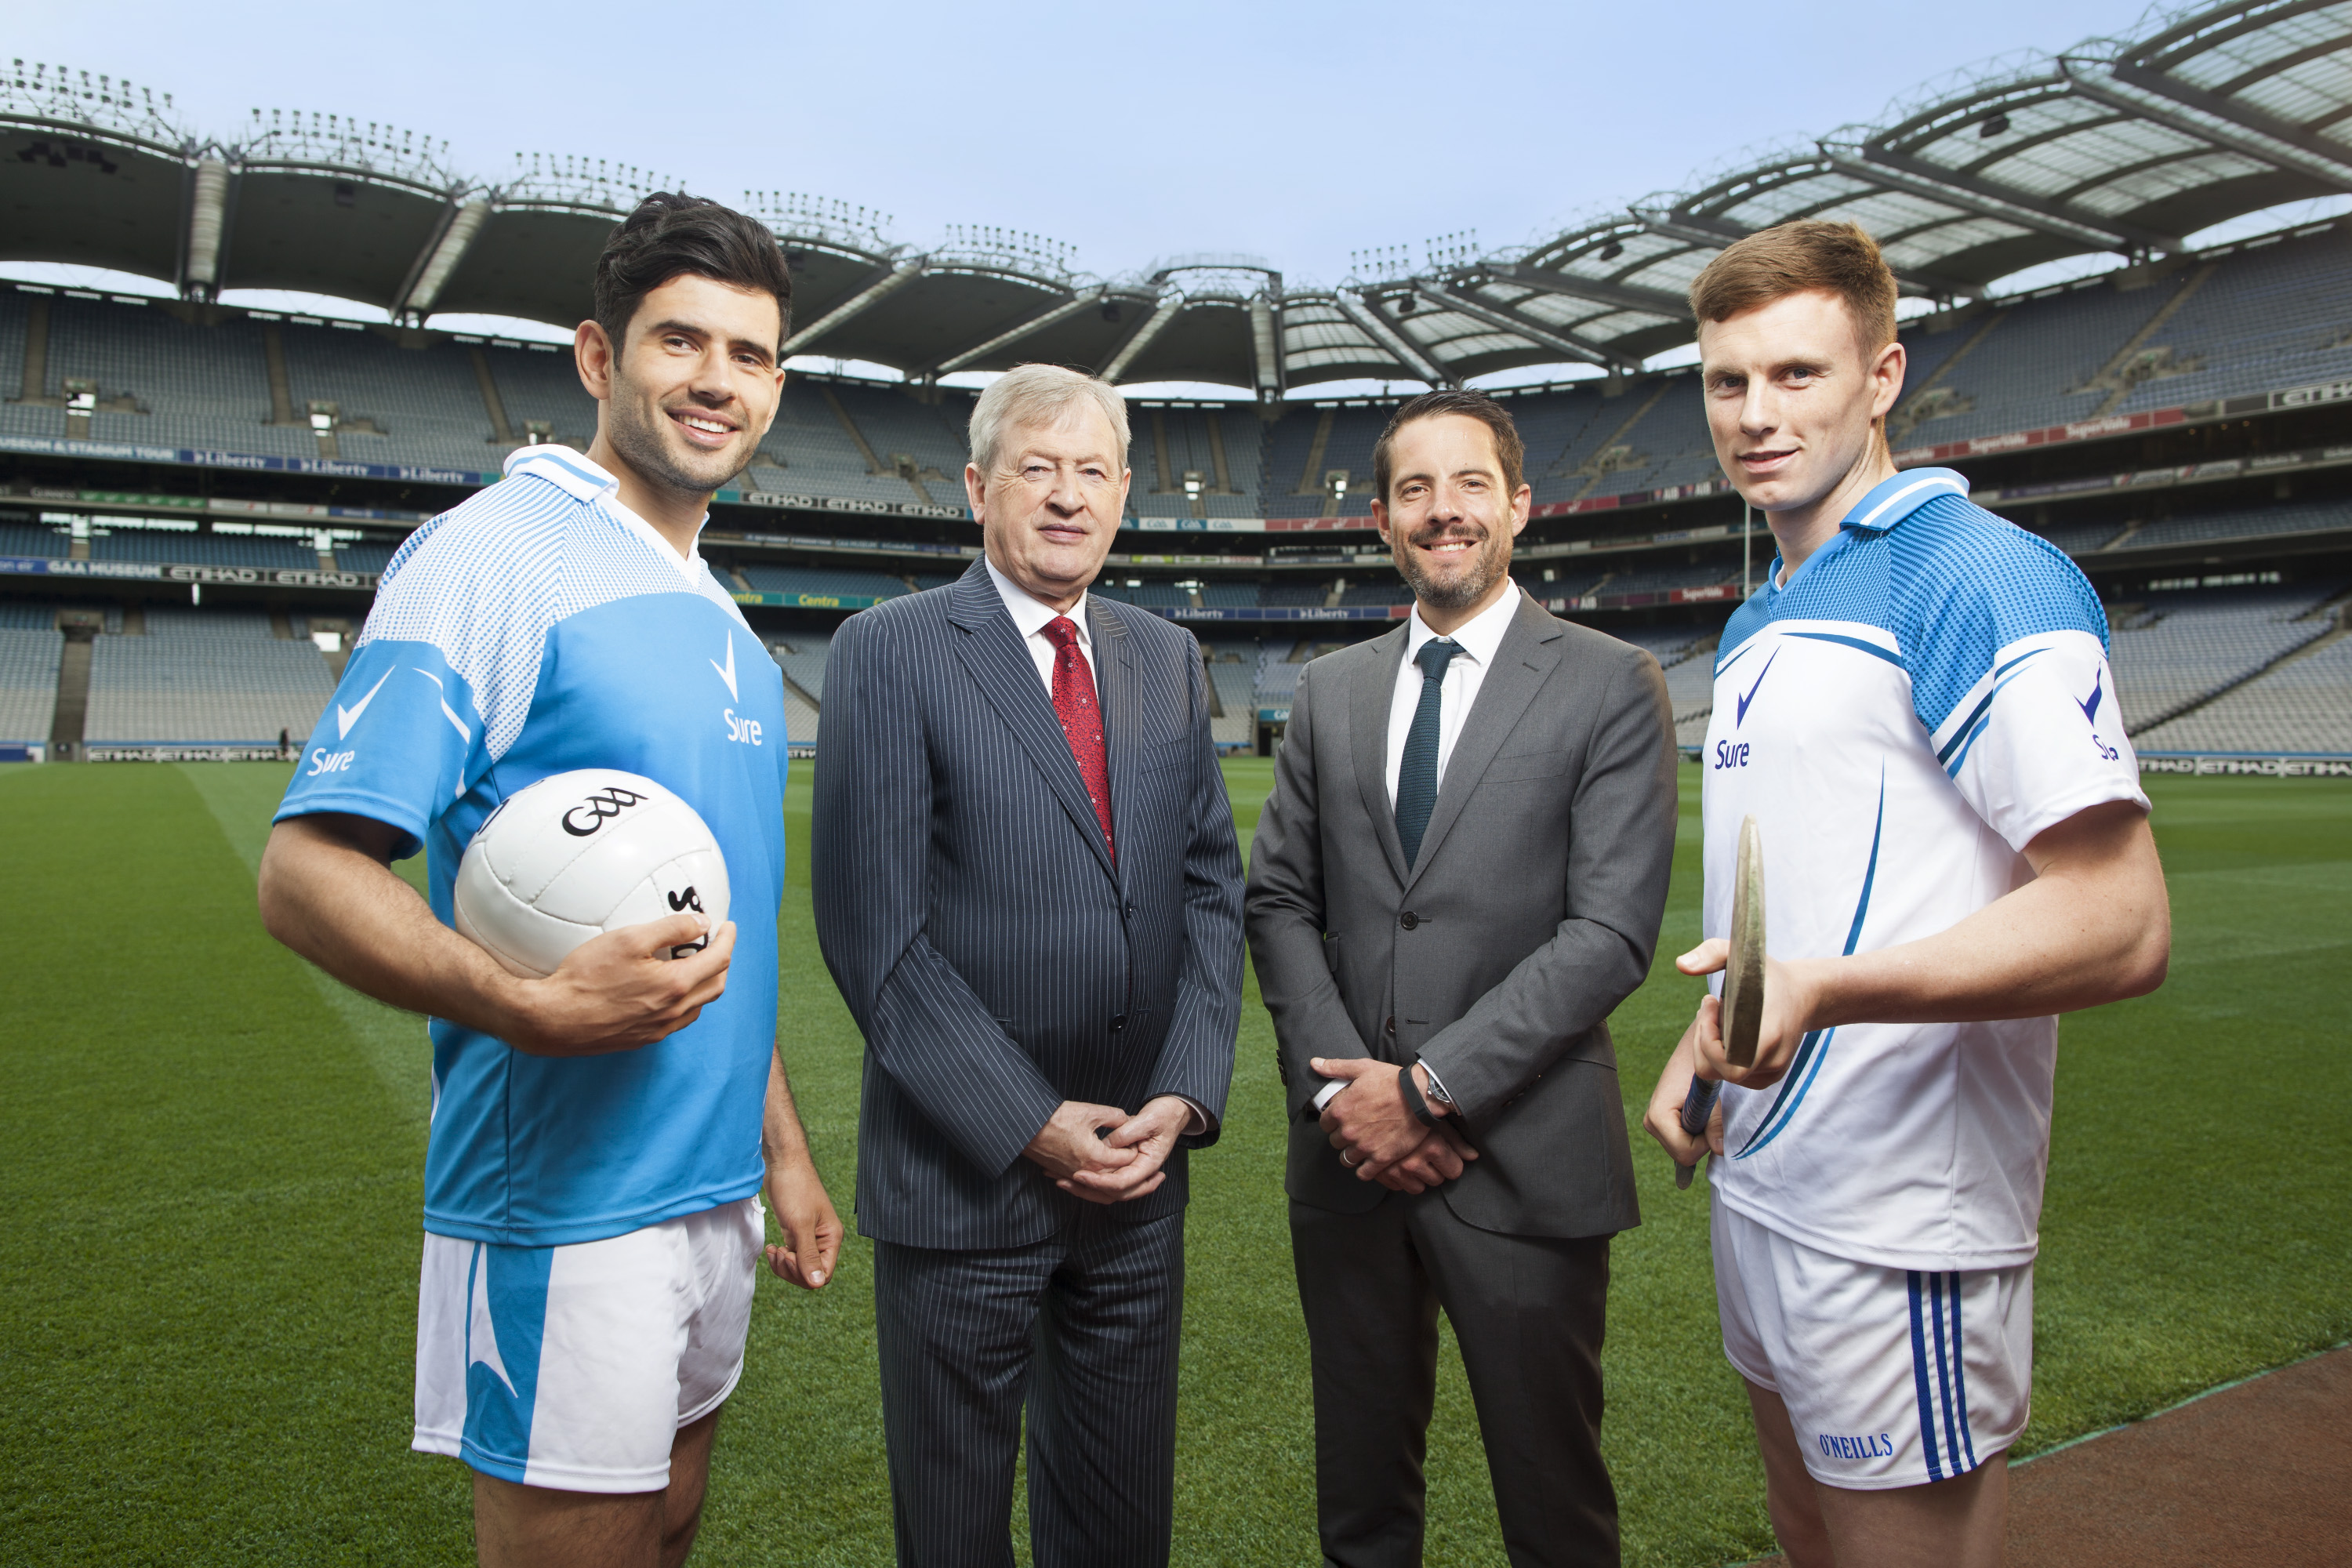 Dublin's Cian O'Sullivan, Waterford's Austin Gleeson, Unilever Ireland MD Nick Johnson and GAA Ard-Stiurthóir Páraic Duffy were in Croke Park today to unveil Sure as the GAA's first ever Official Statistics Partner. The partnership will unlock the stories behind GAA statistics, inspiring people to get up and get moving. #MakeYourMove